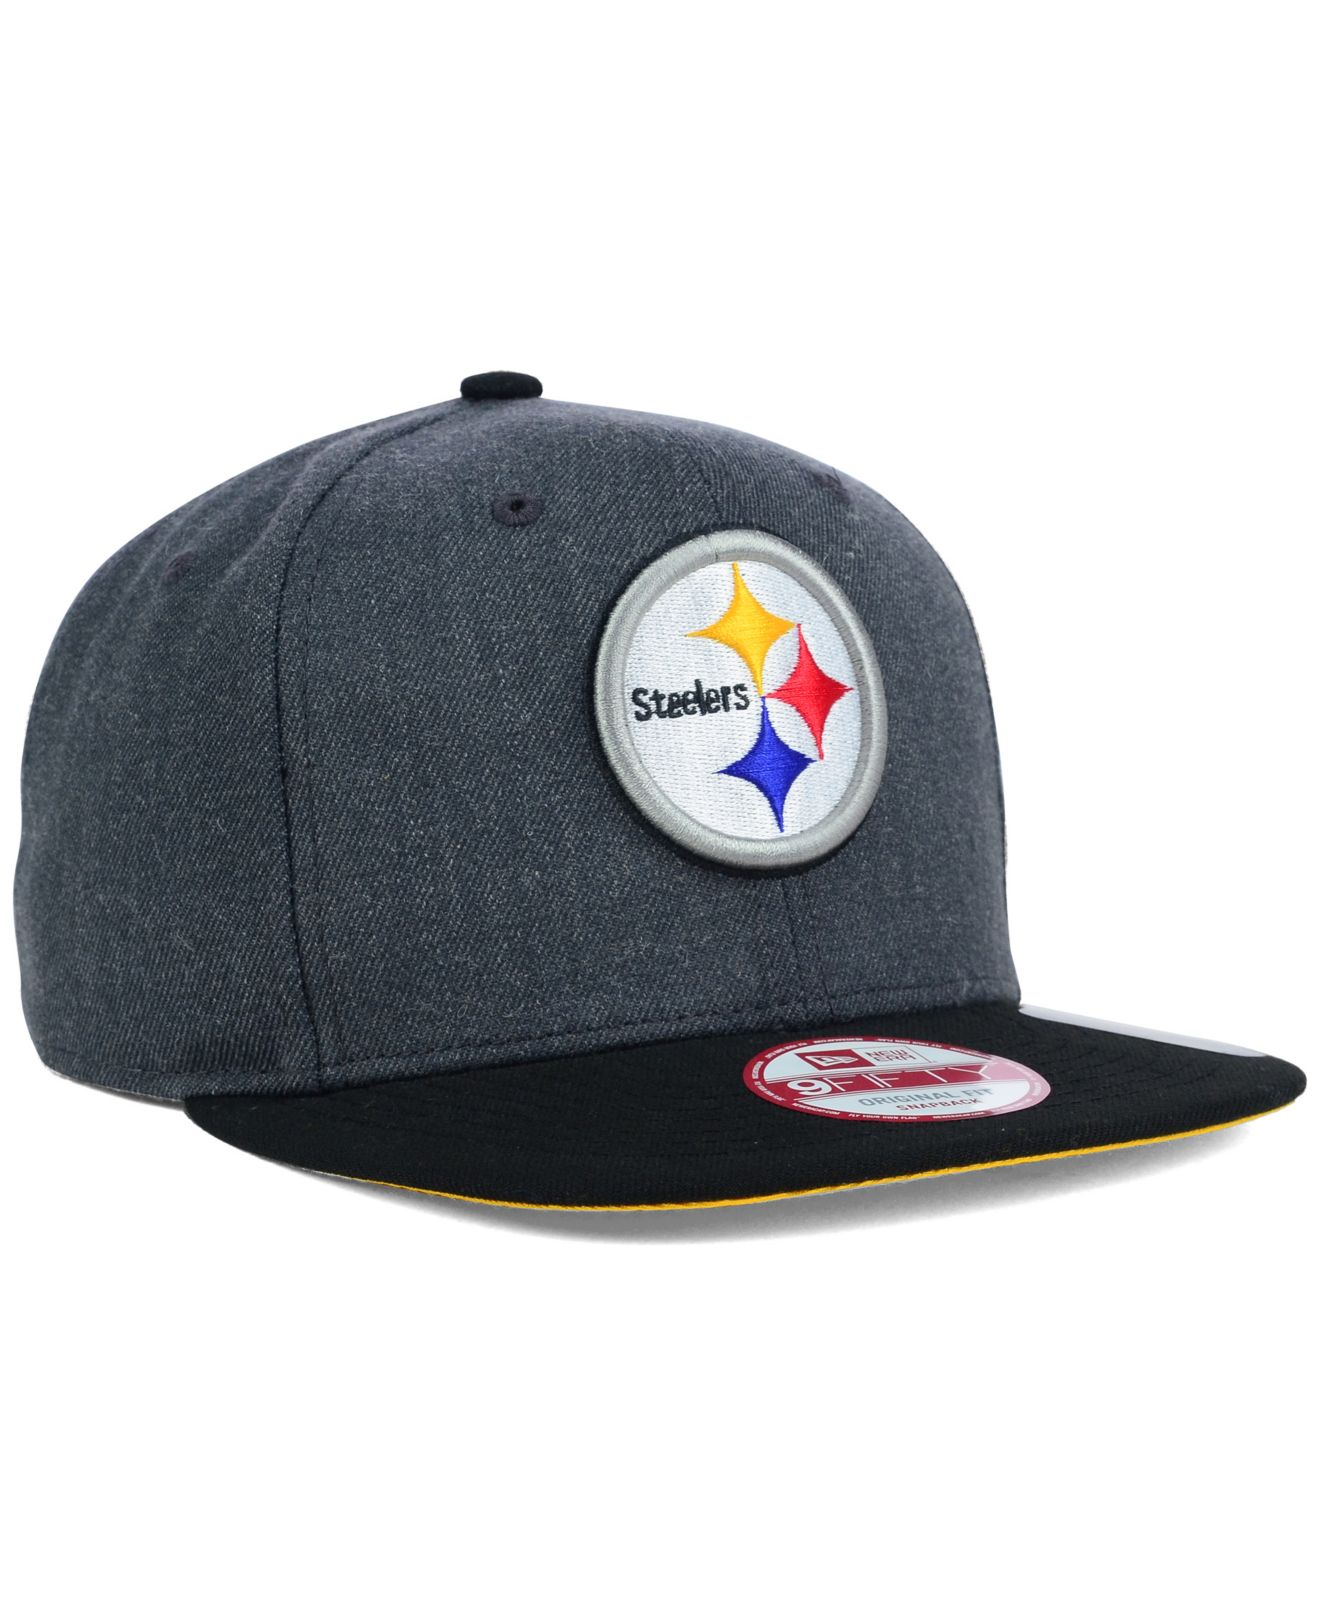 07a011cec Lyst - Ktz Pittsburgh Steelers 2-tone Action 9fifty Snapback Cap in ...